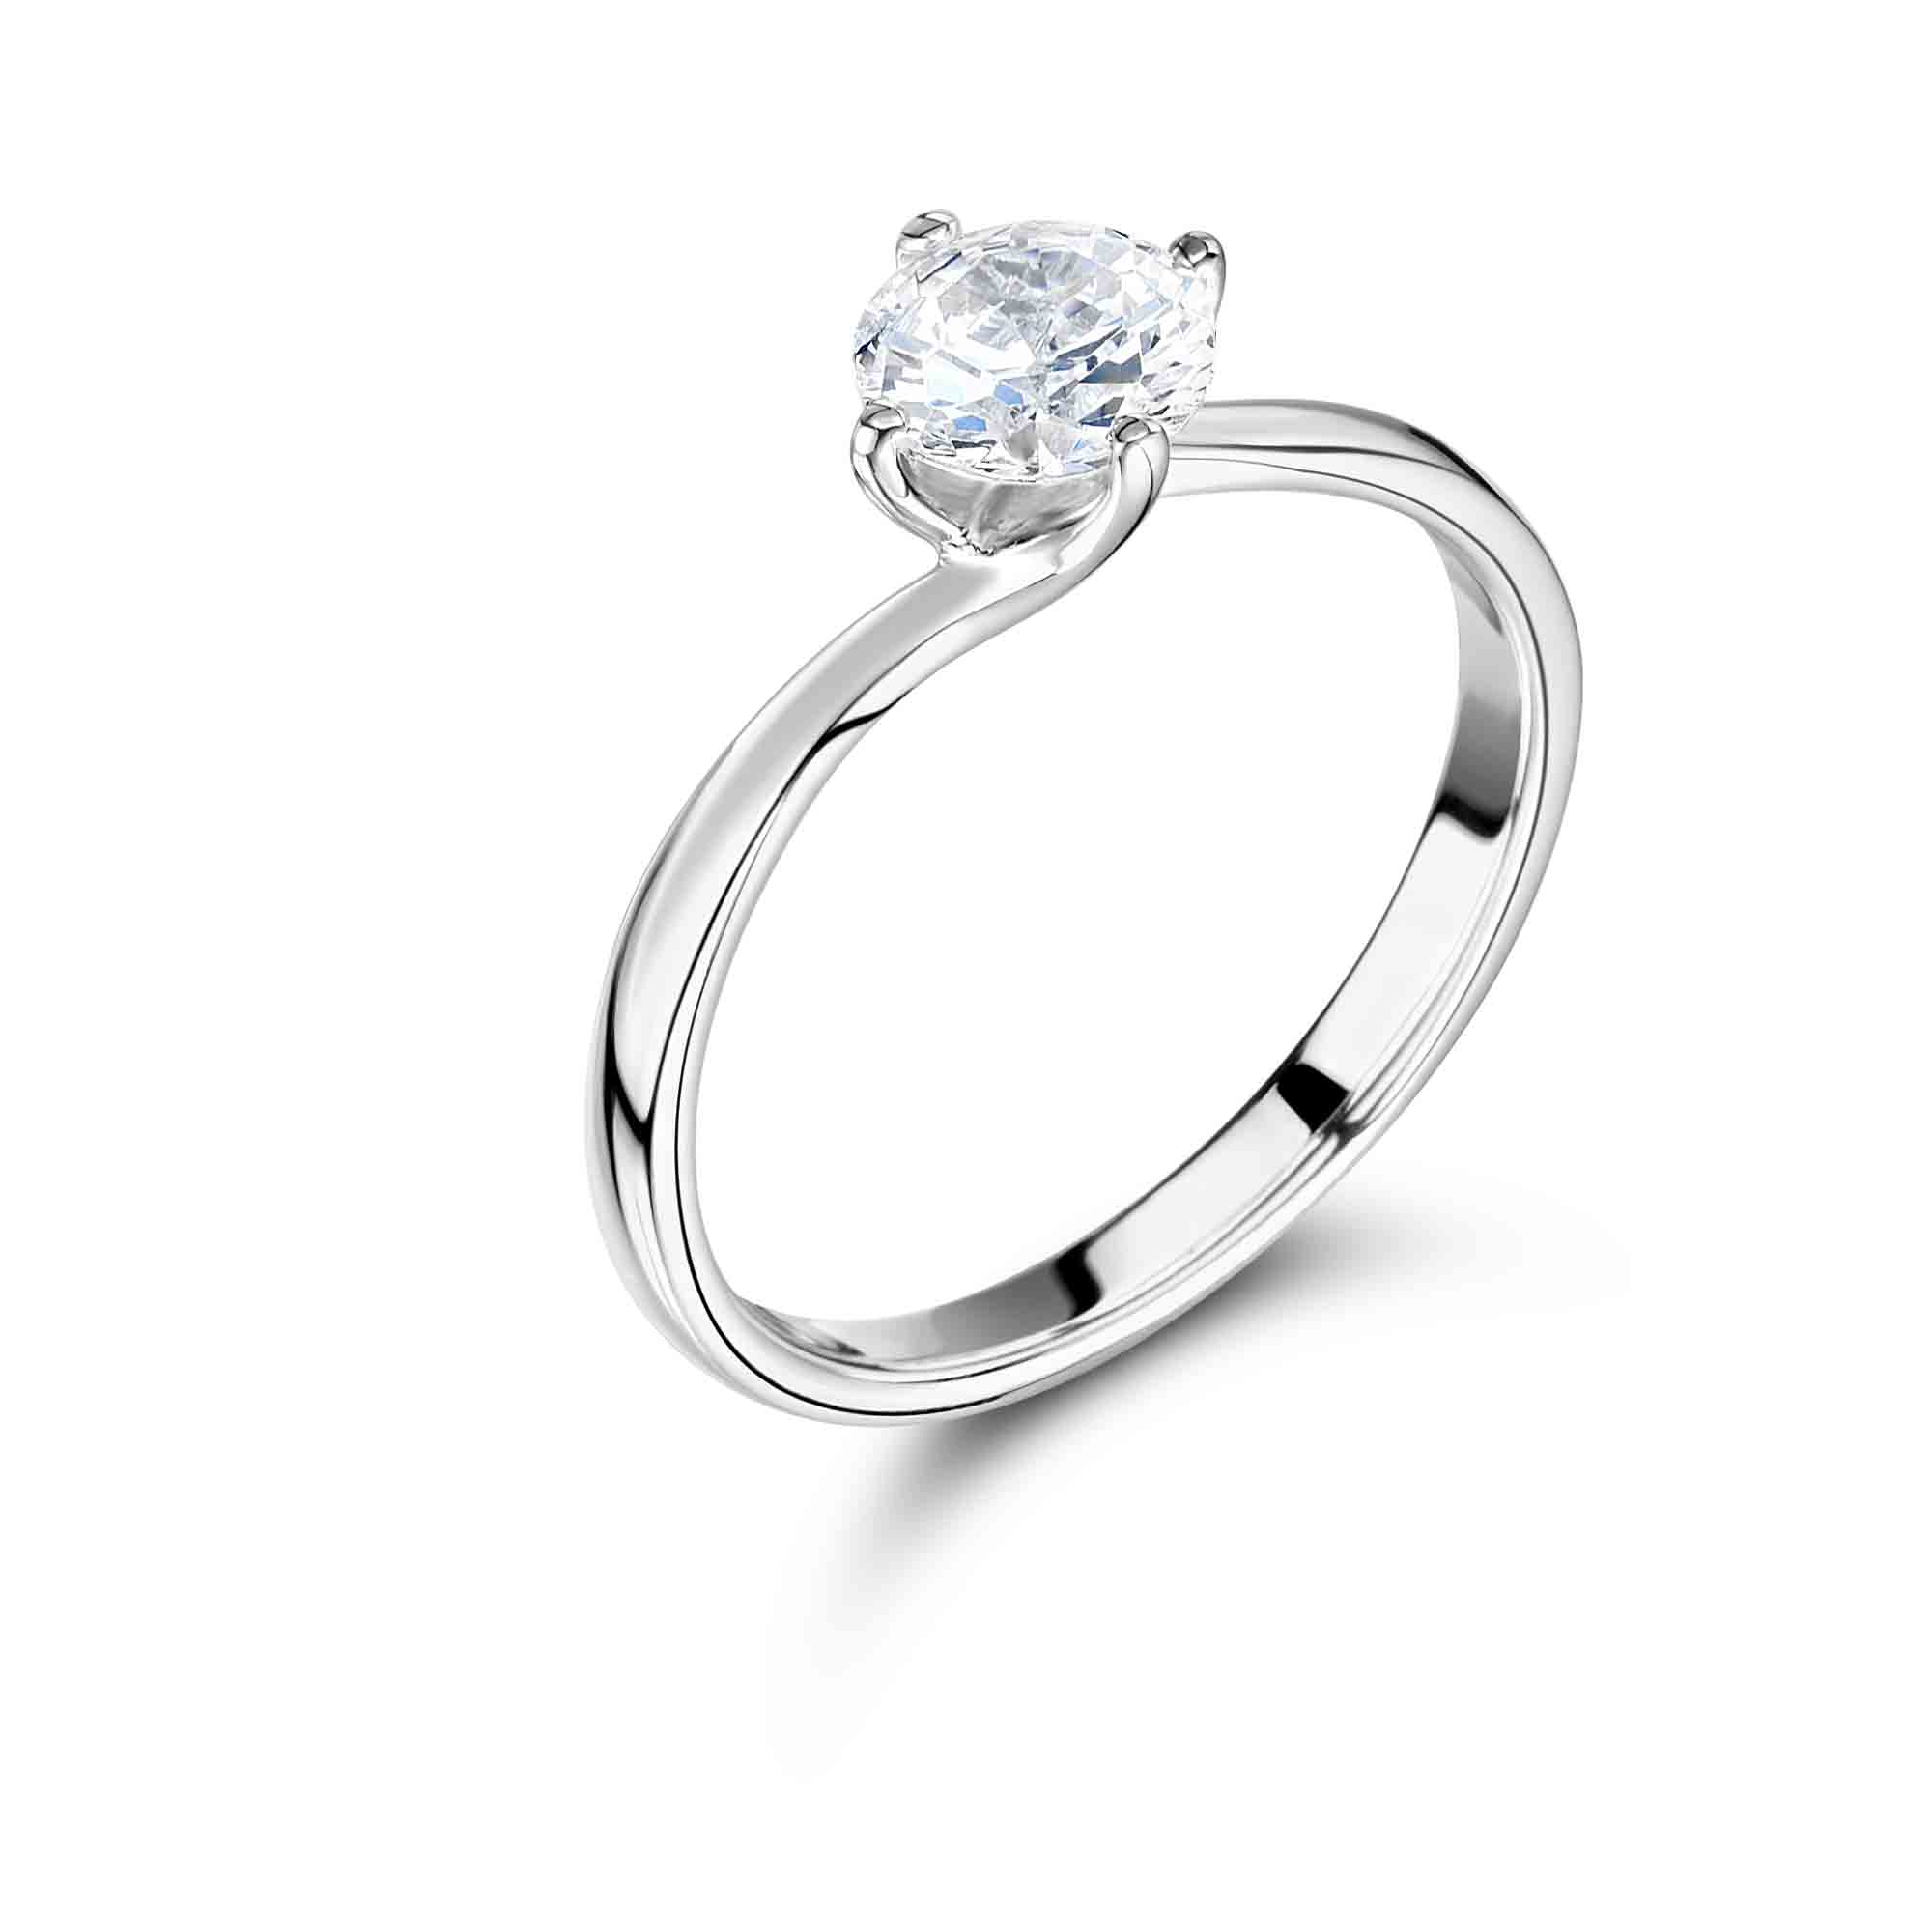 band a wedding index solitaire detail brand new ring as gia platinum set diamond engagement rings with